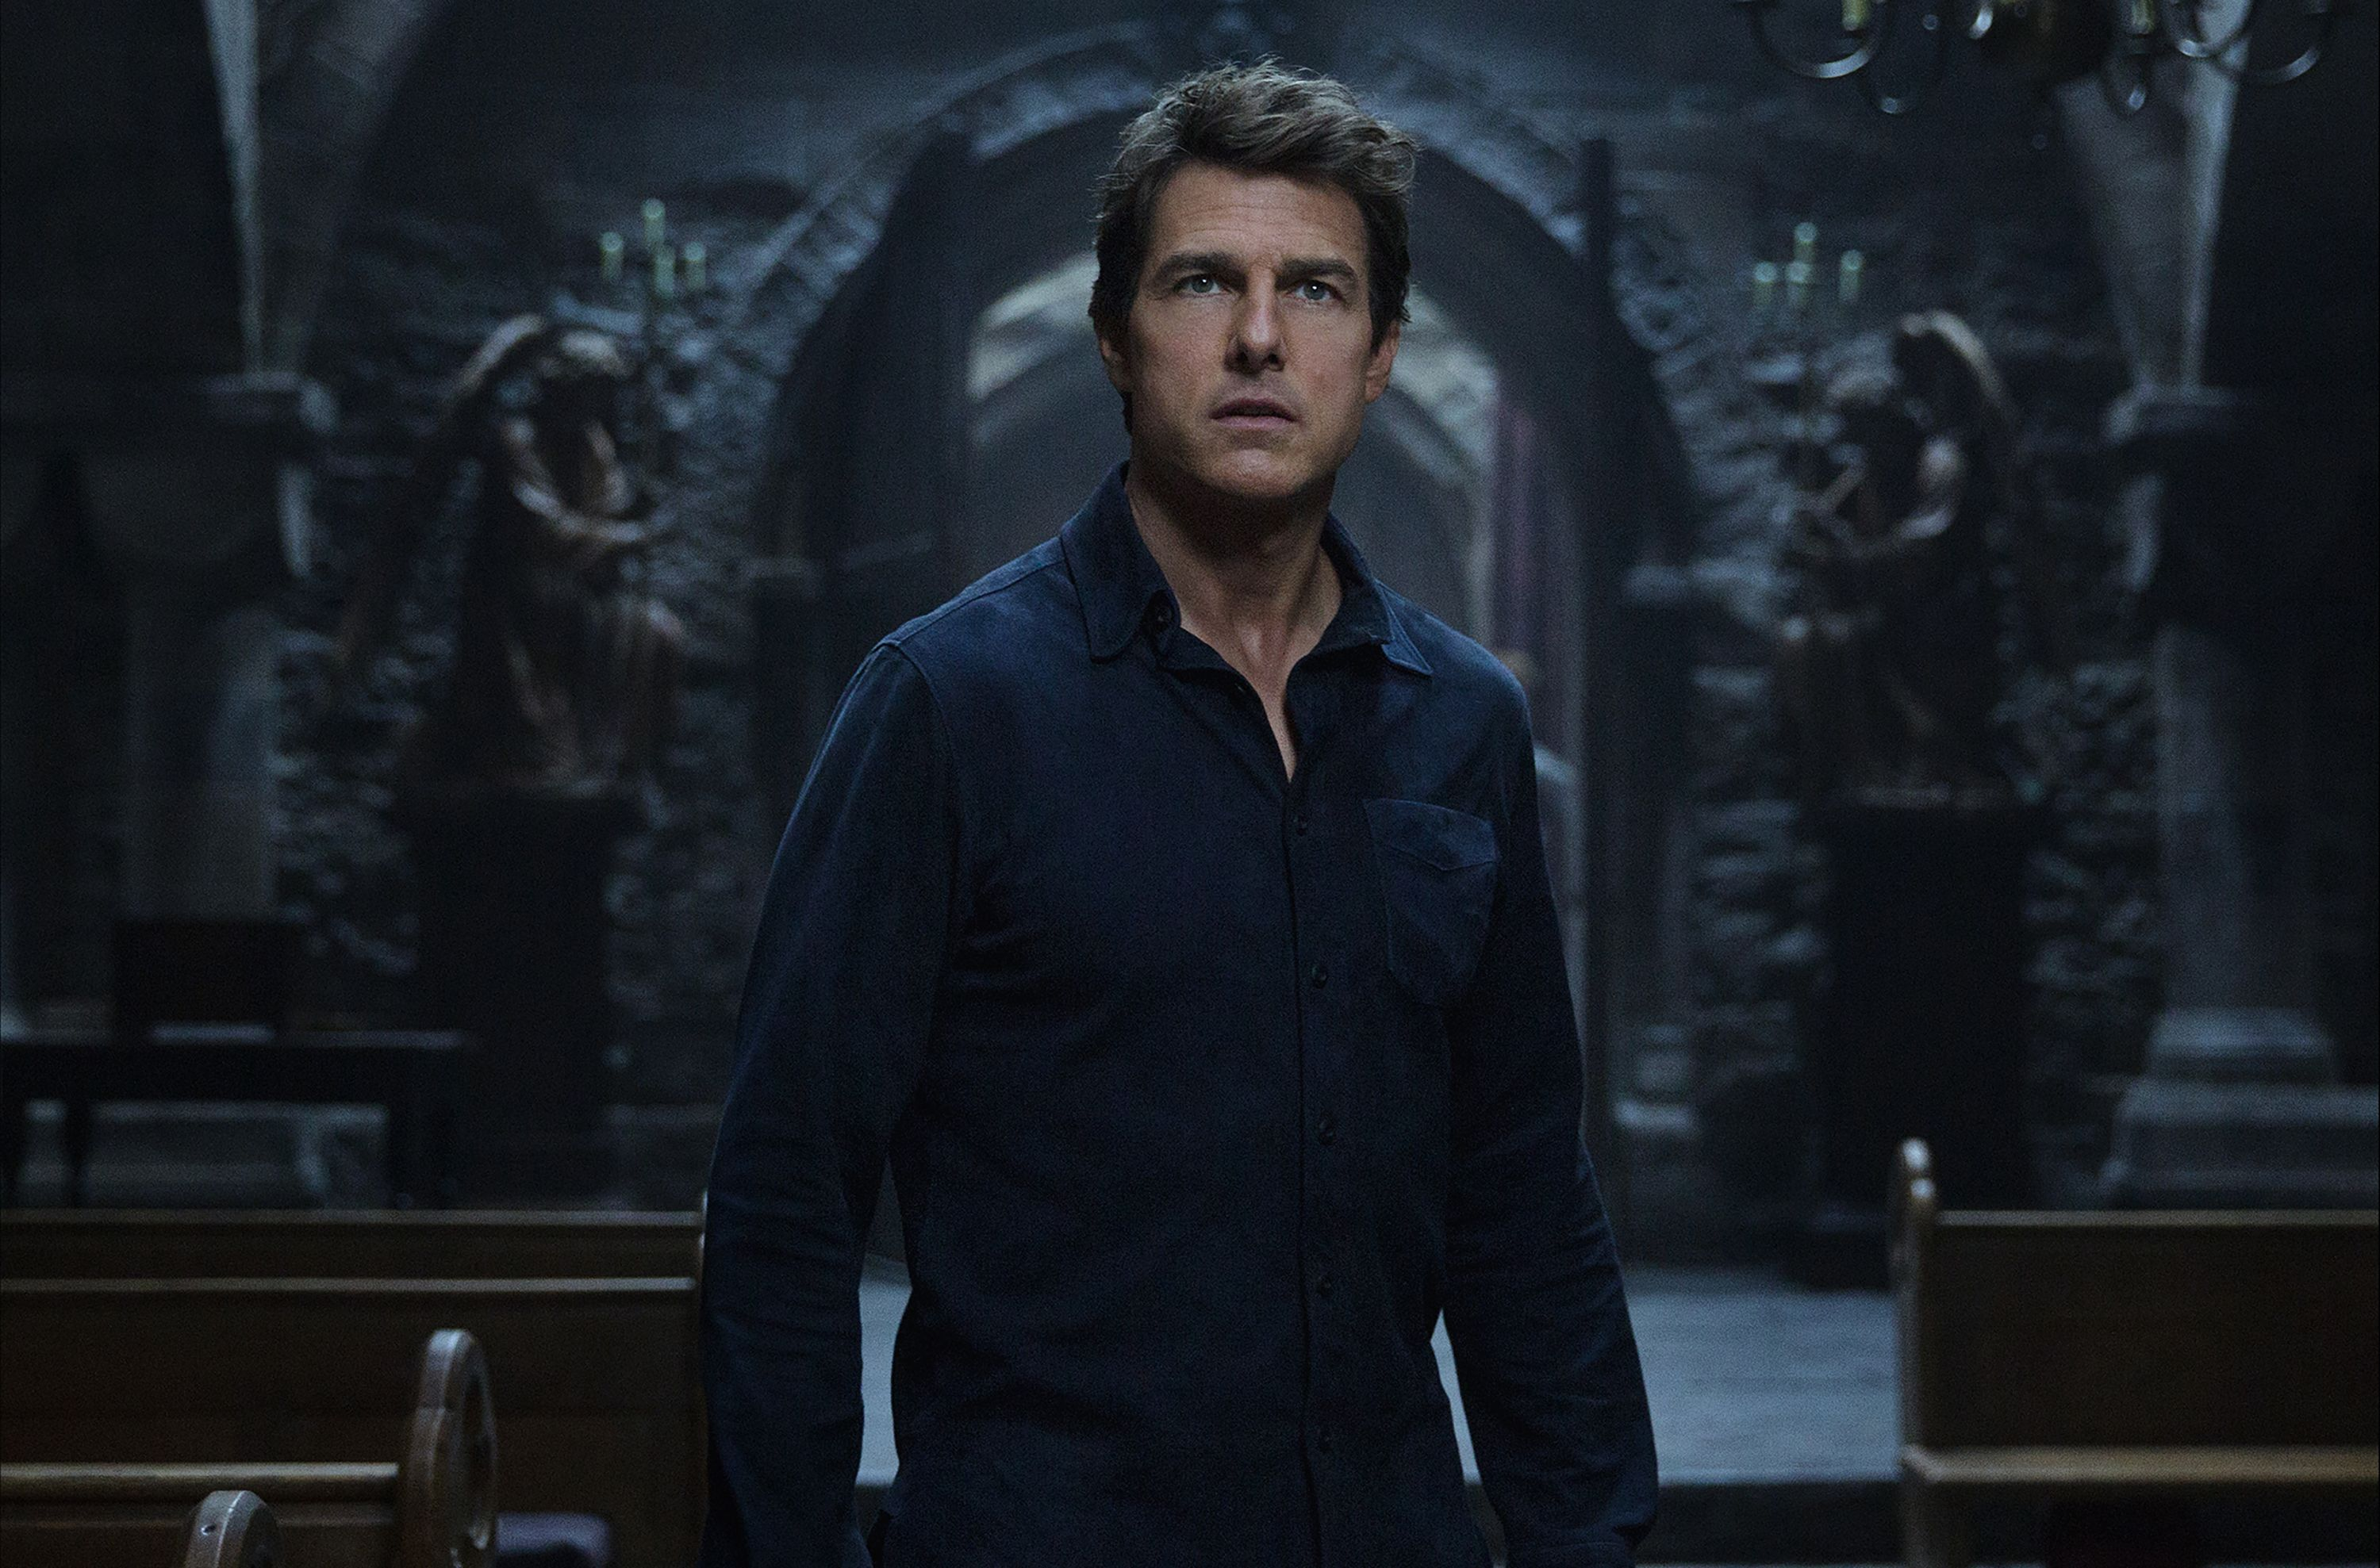 Tom Cruise In The Mummy | Movies HD 4k Wallpapers Tom Cruise